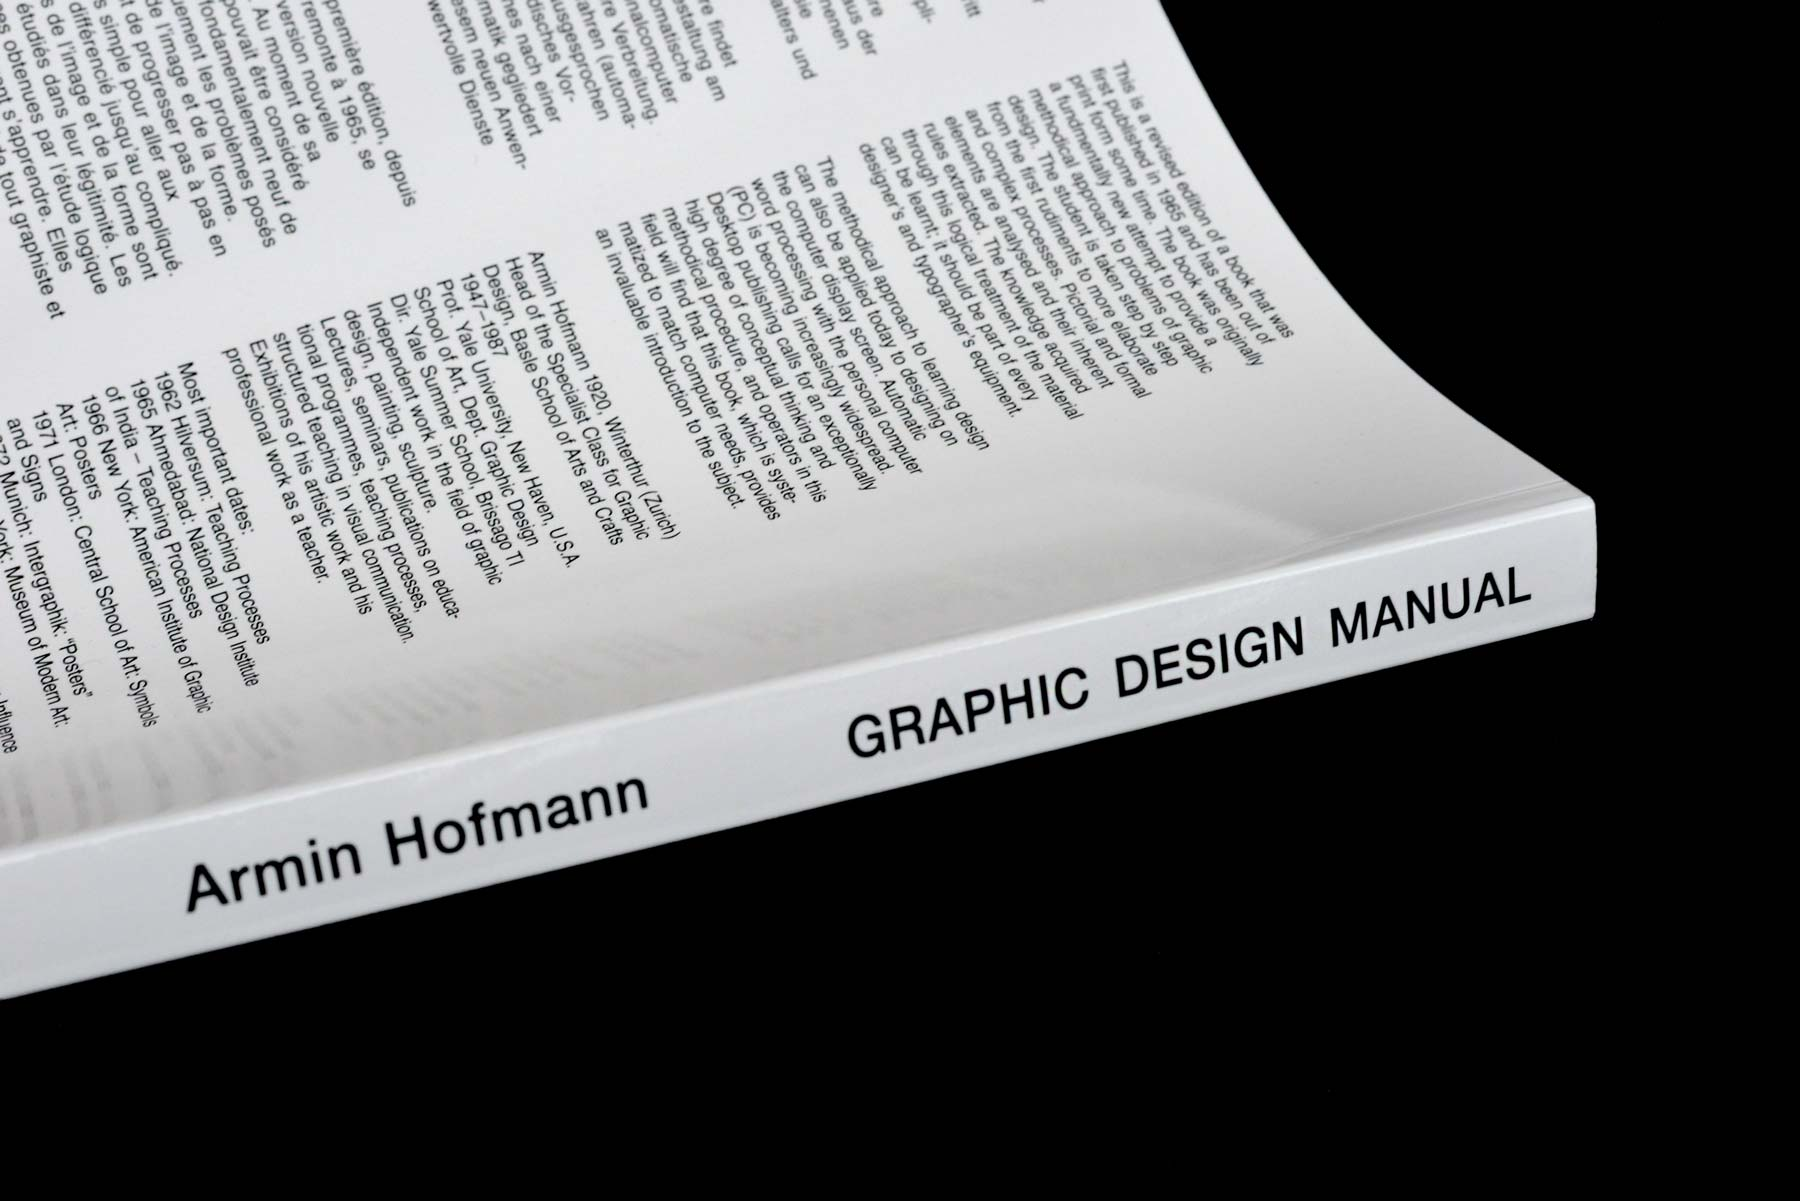 gdfs-library-graphic-design-manual-a